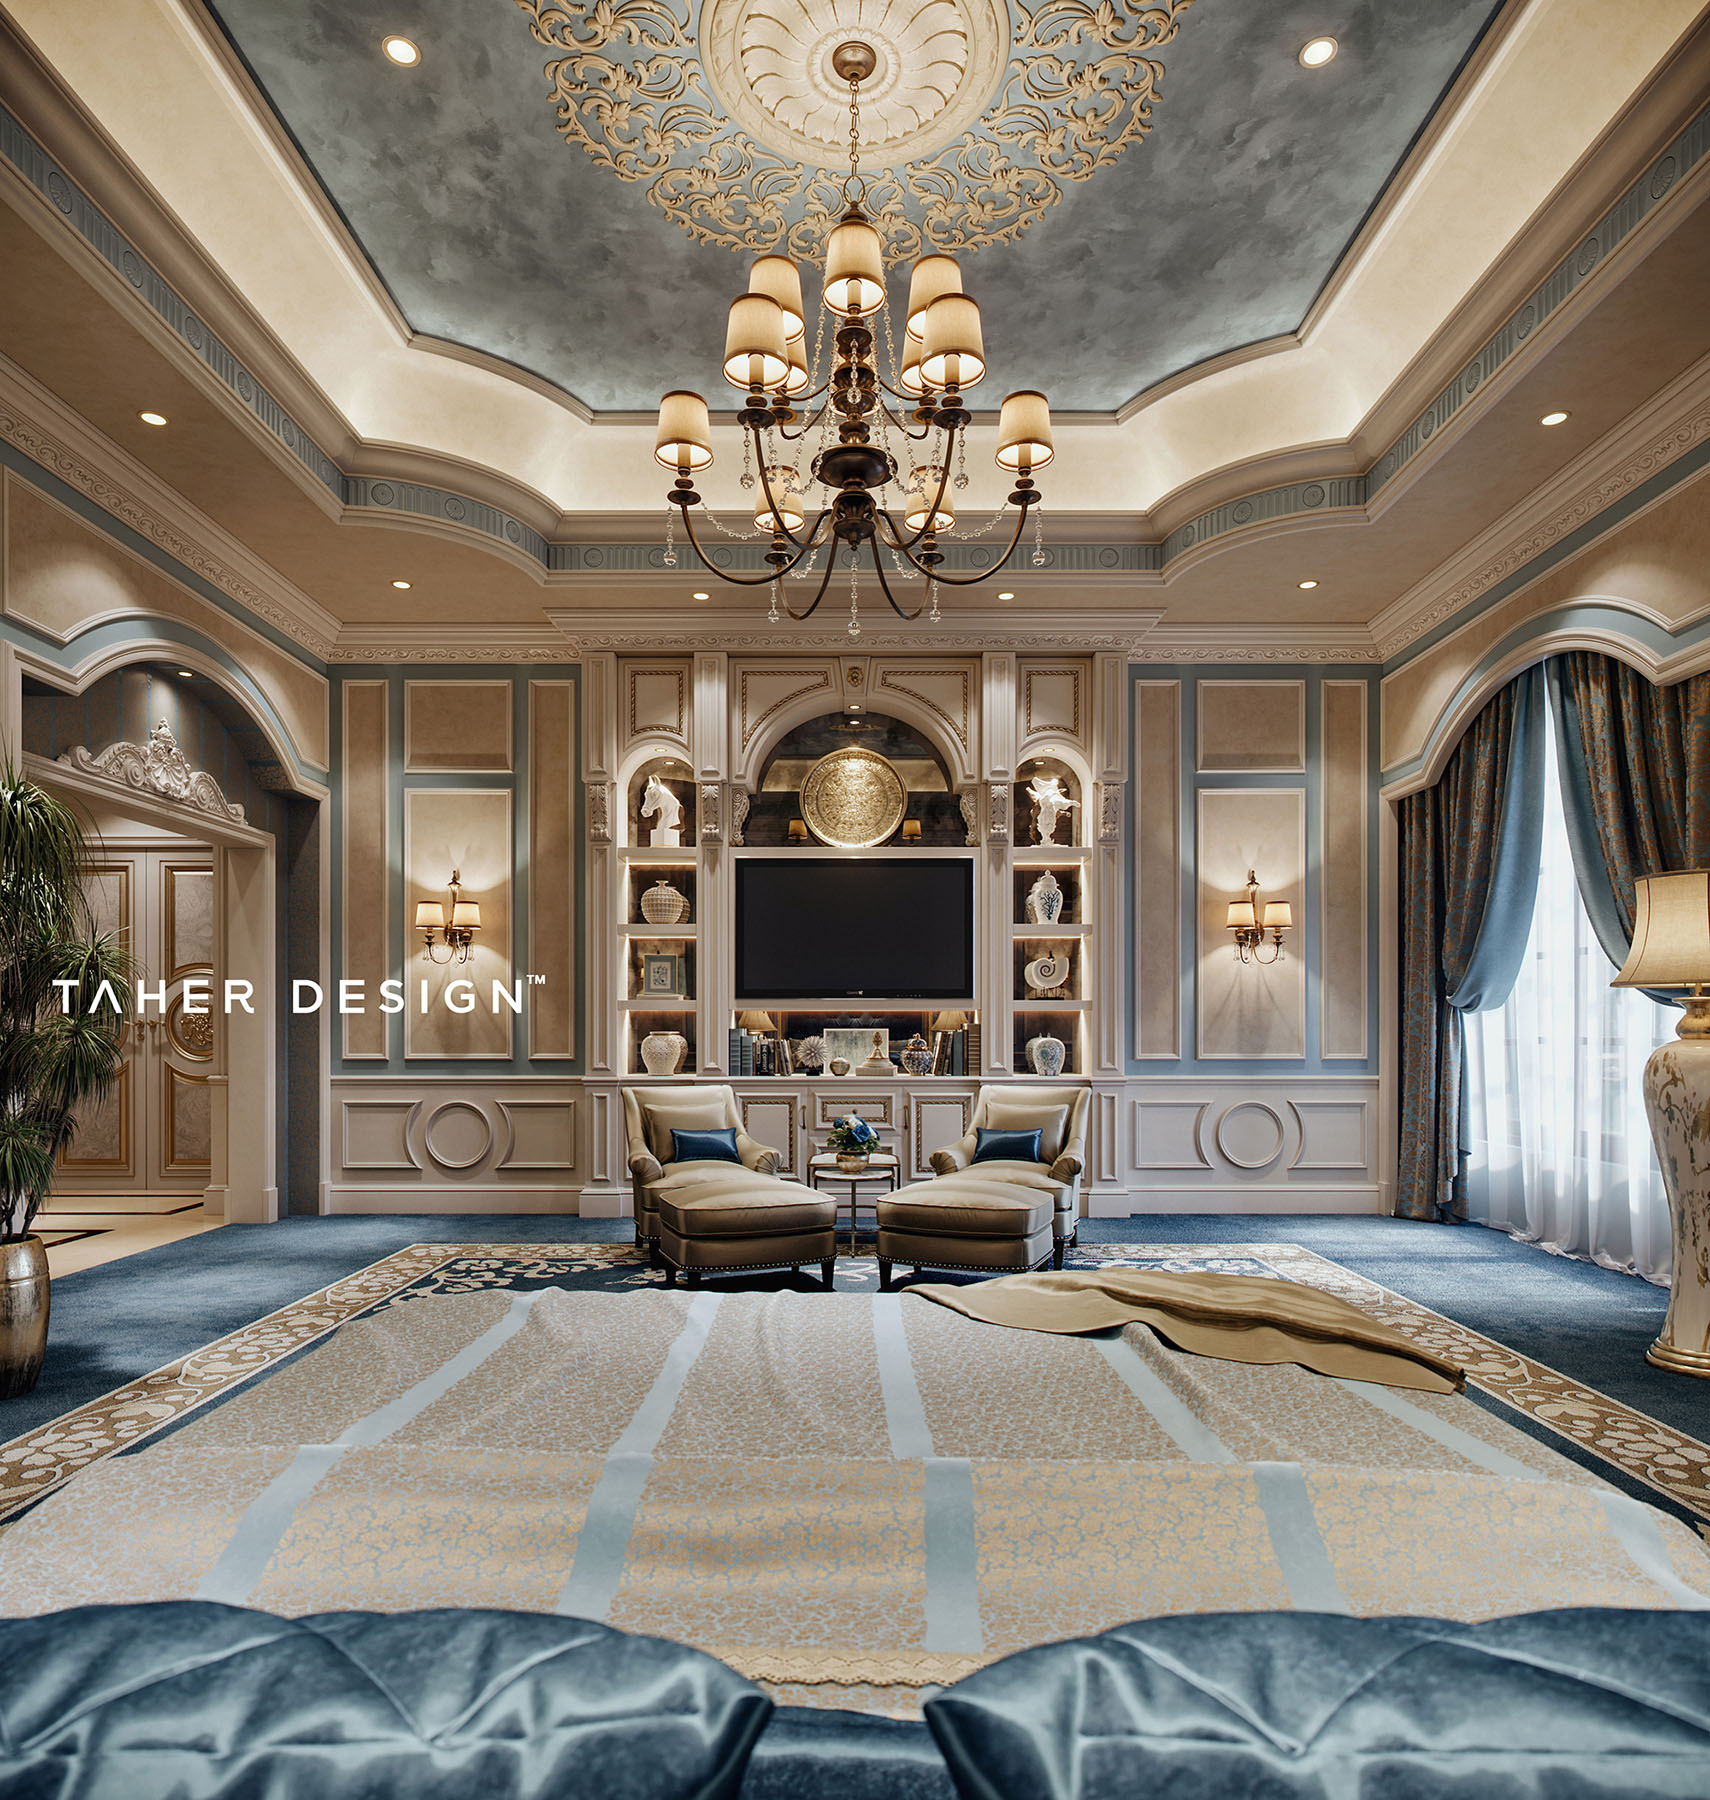 Taher Design Luxury M.bedroom Dubai  (2).jpg